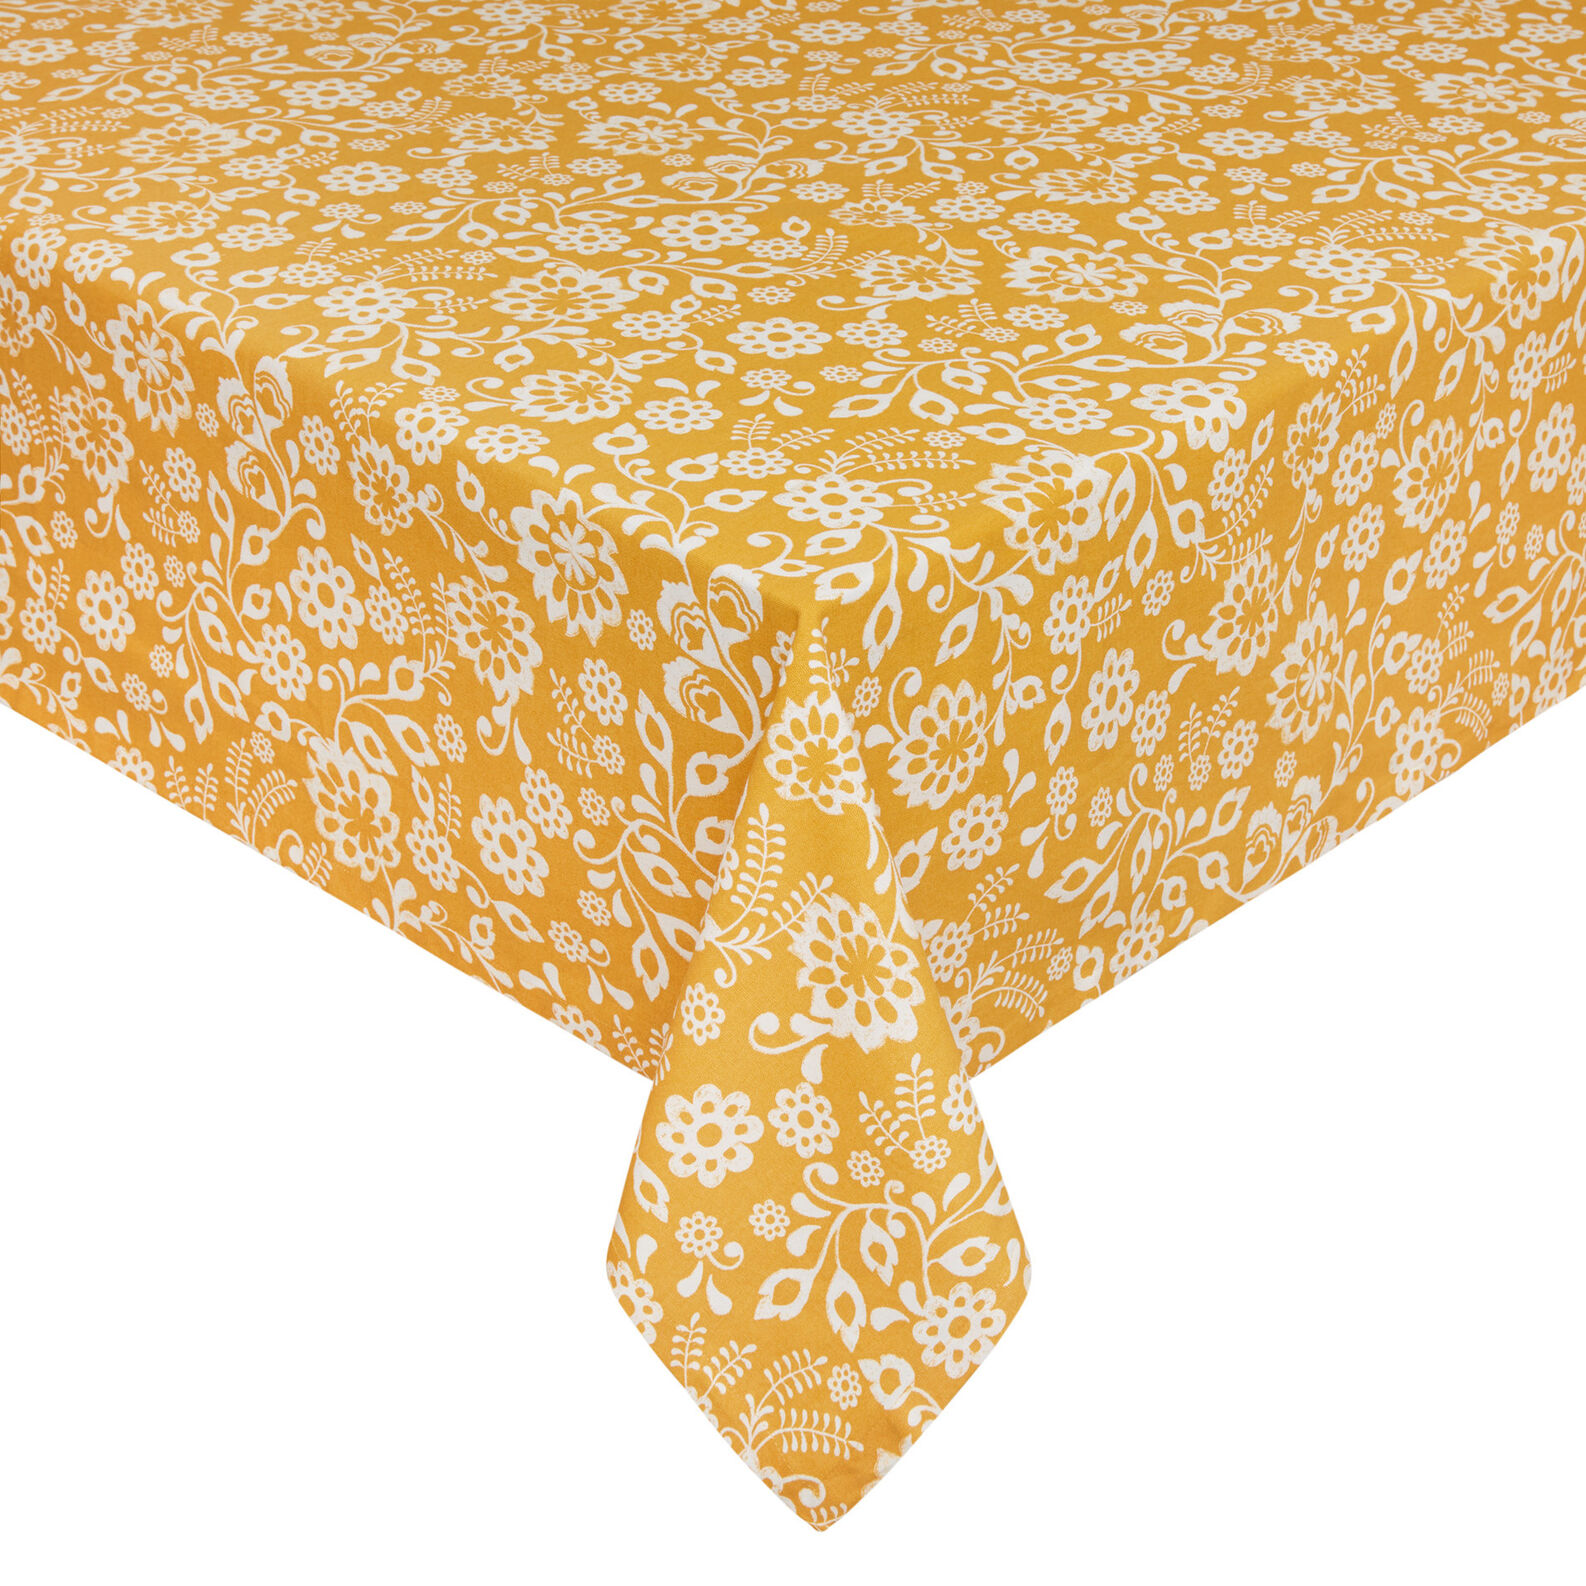 100% cotton water-repellent tablecloth with sunflowers print